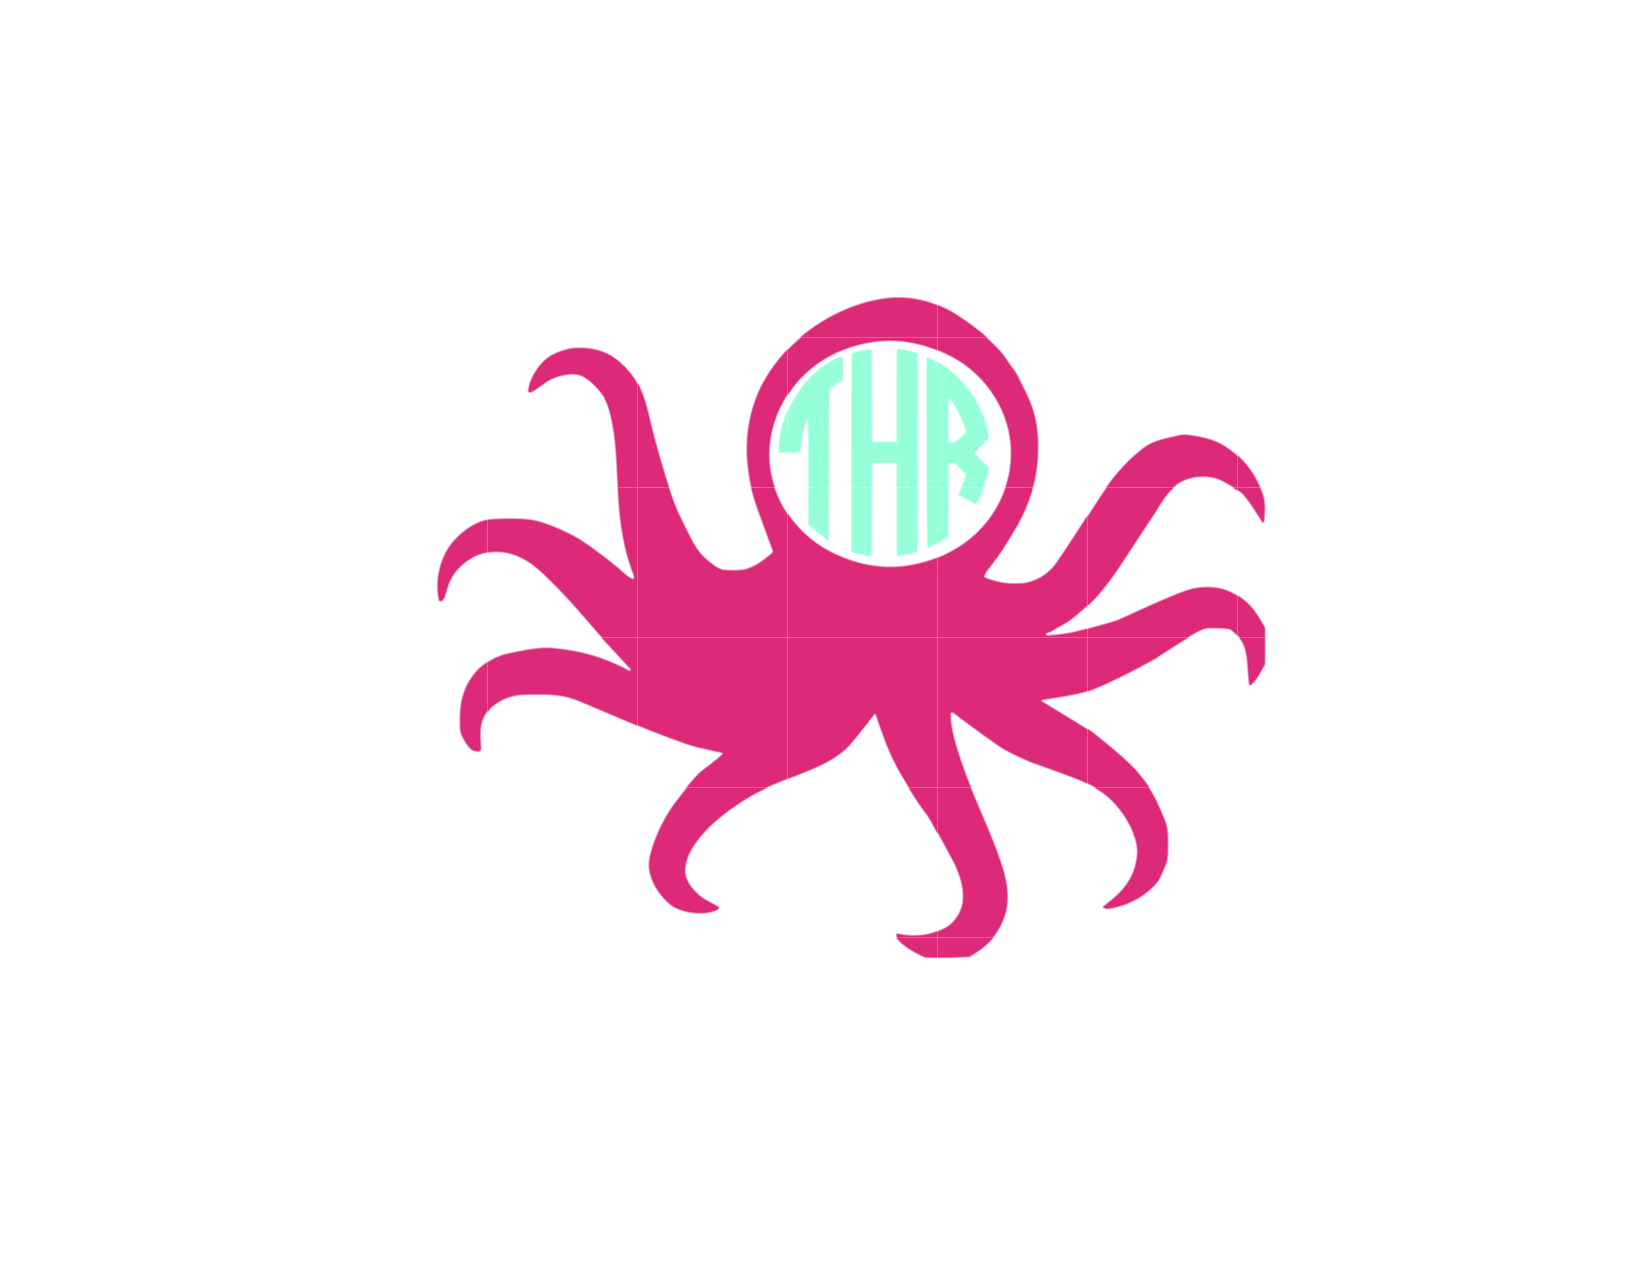 Octopus Vinyle Decal